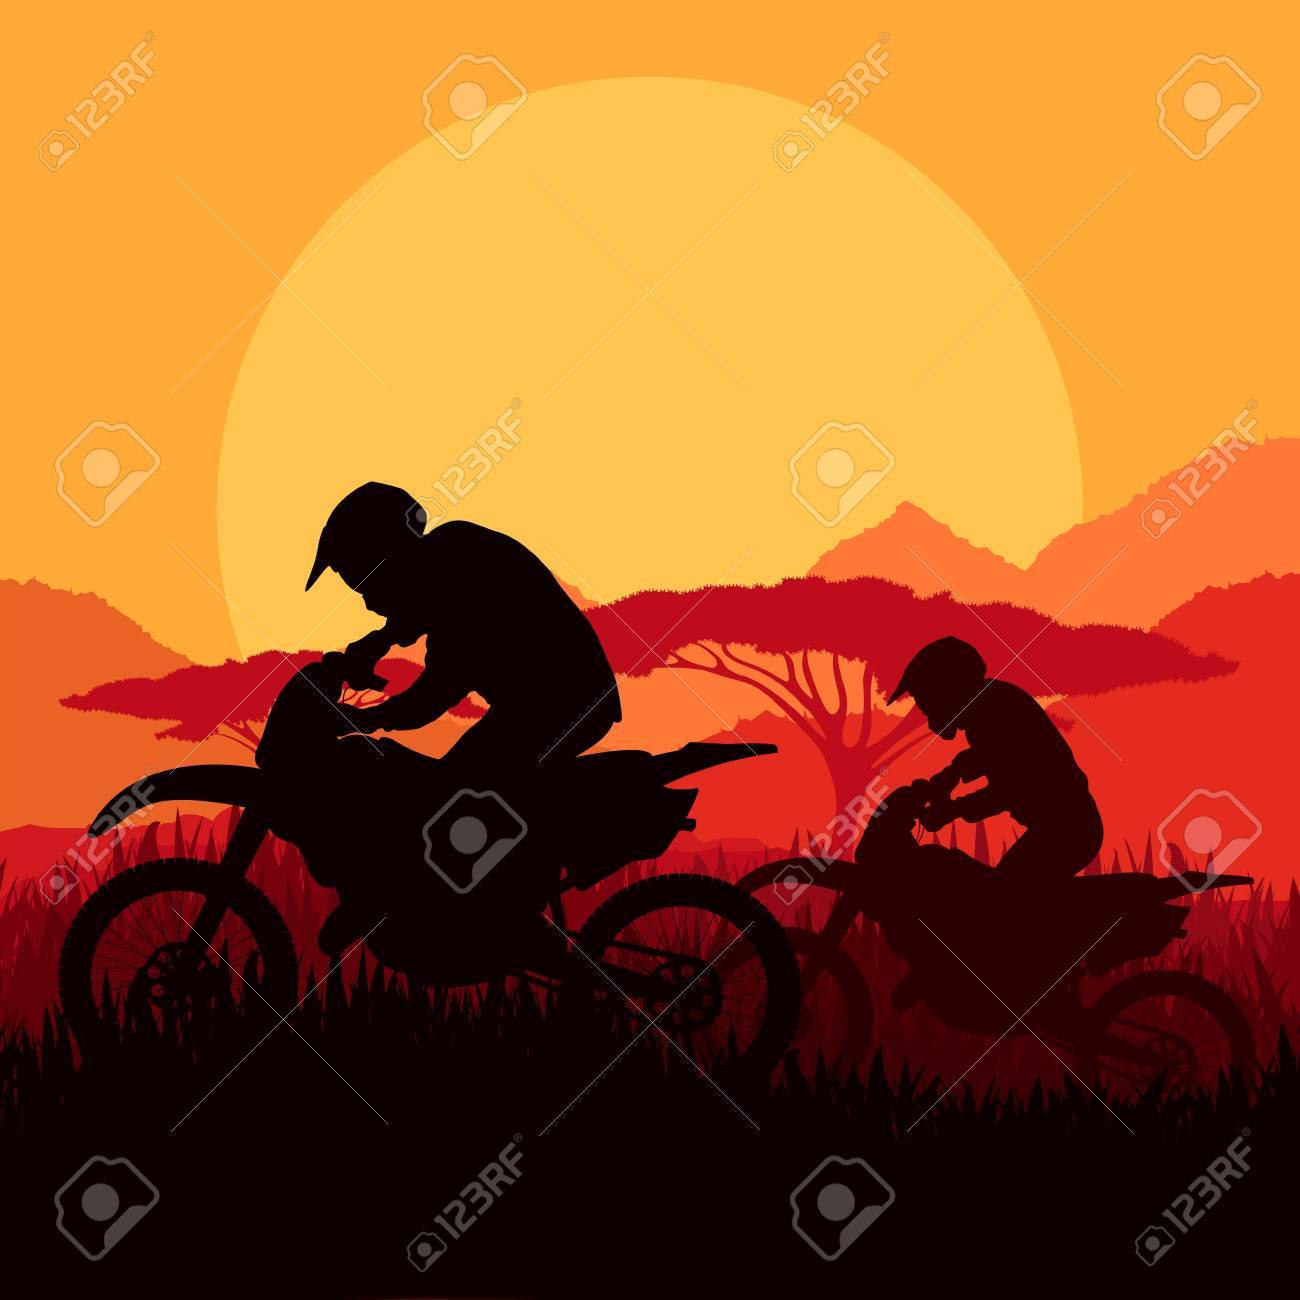 Motorbike riders motorcycle silhouettes in wild mountain landscape background illustration vector Stock Vector - 15272097